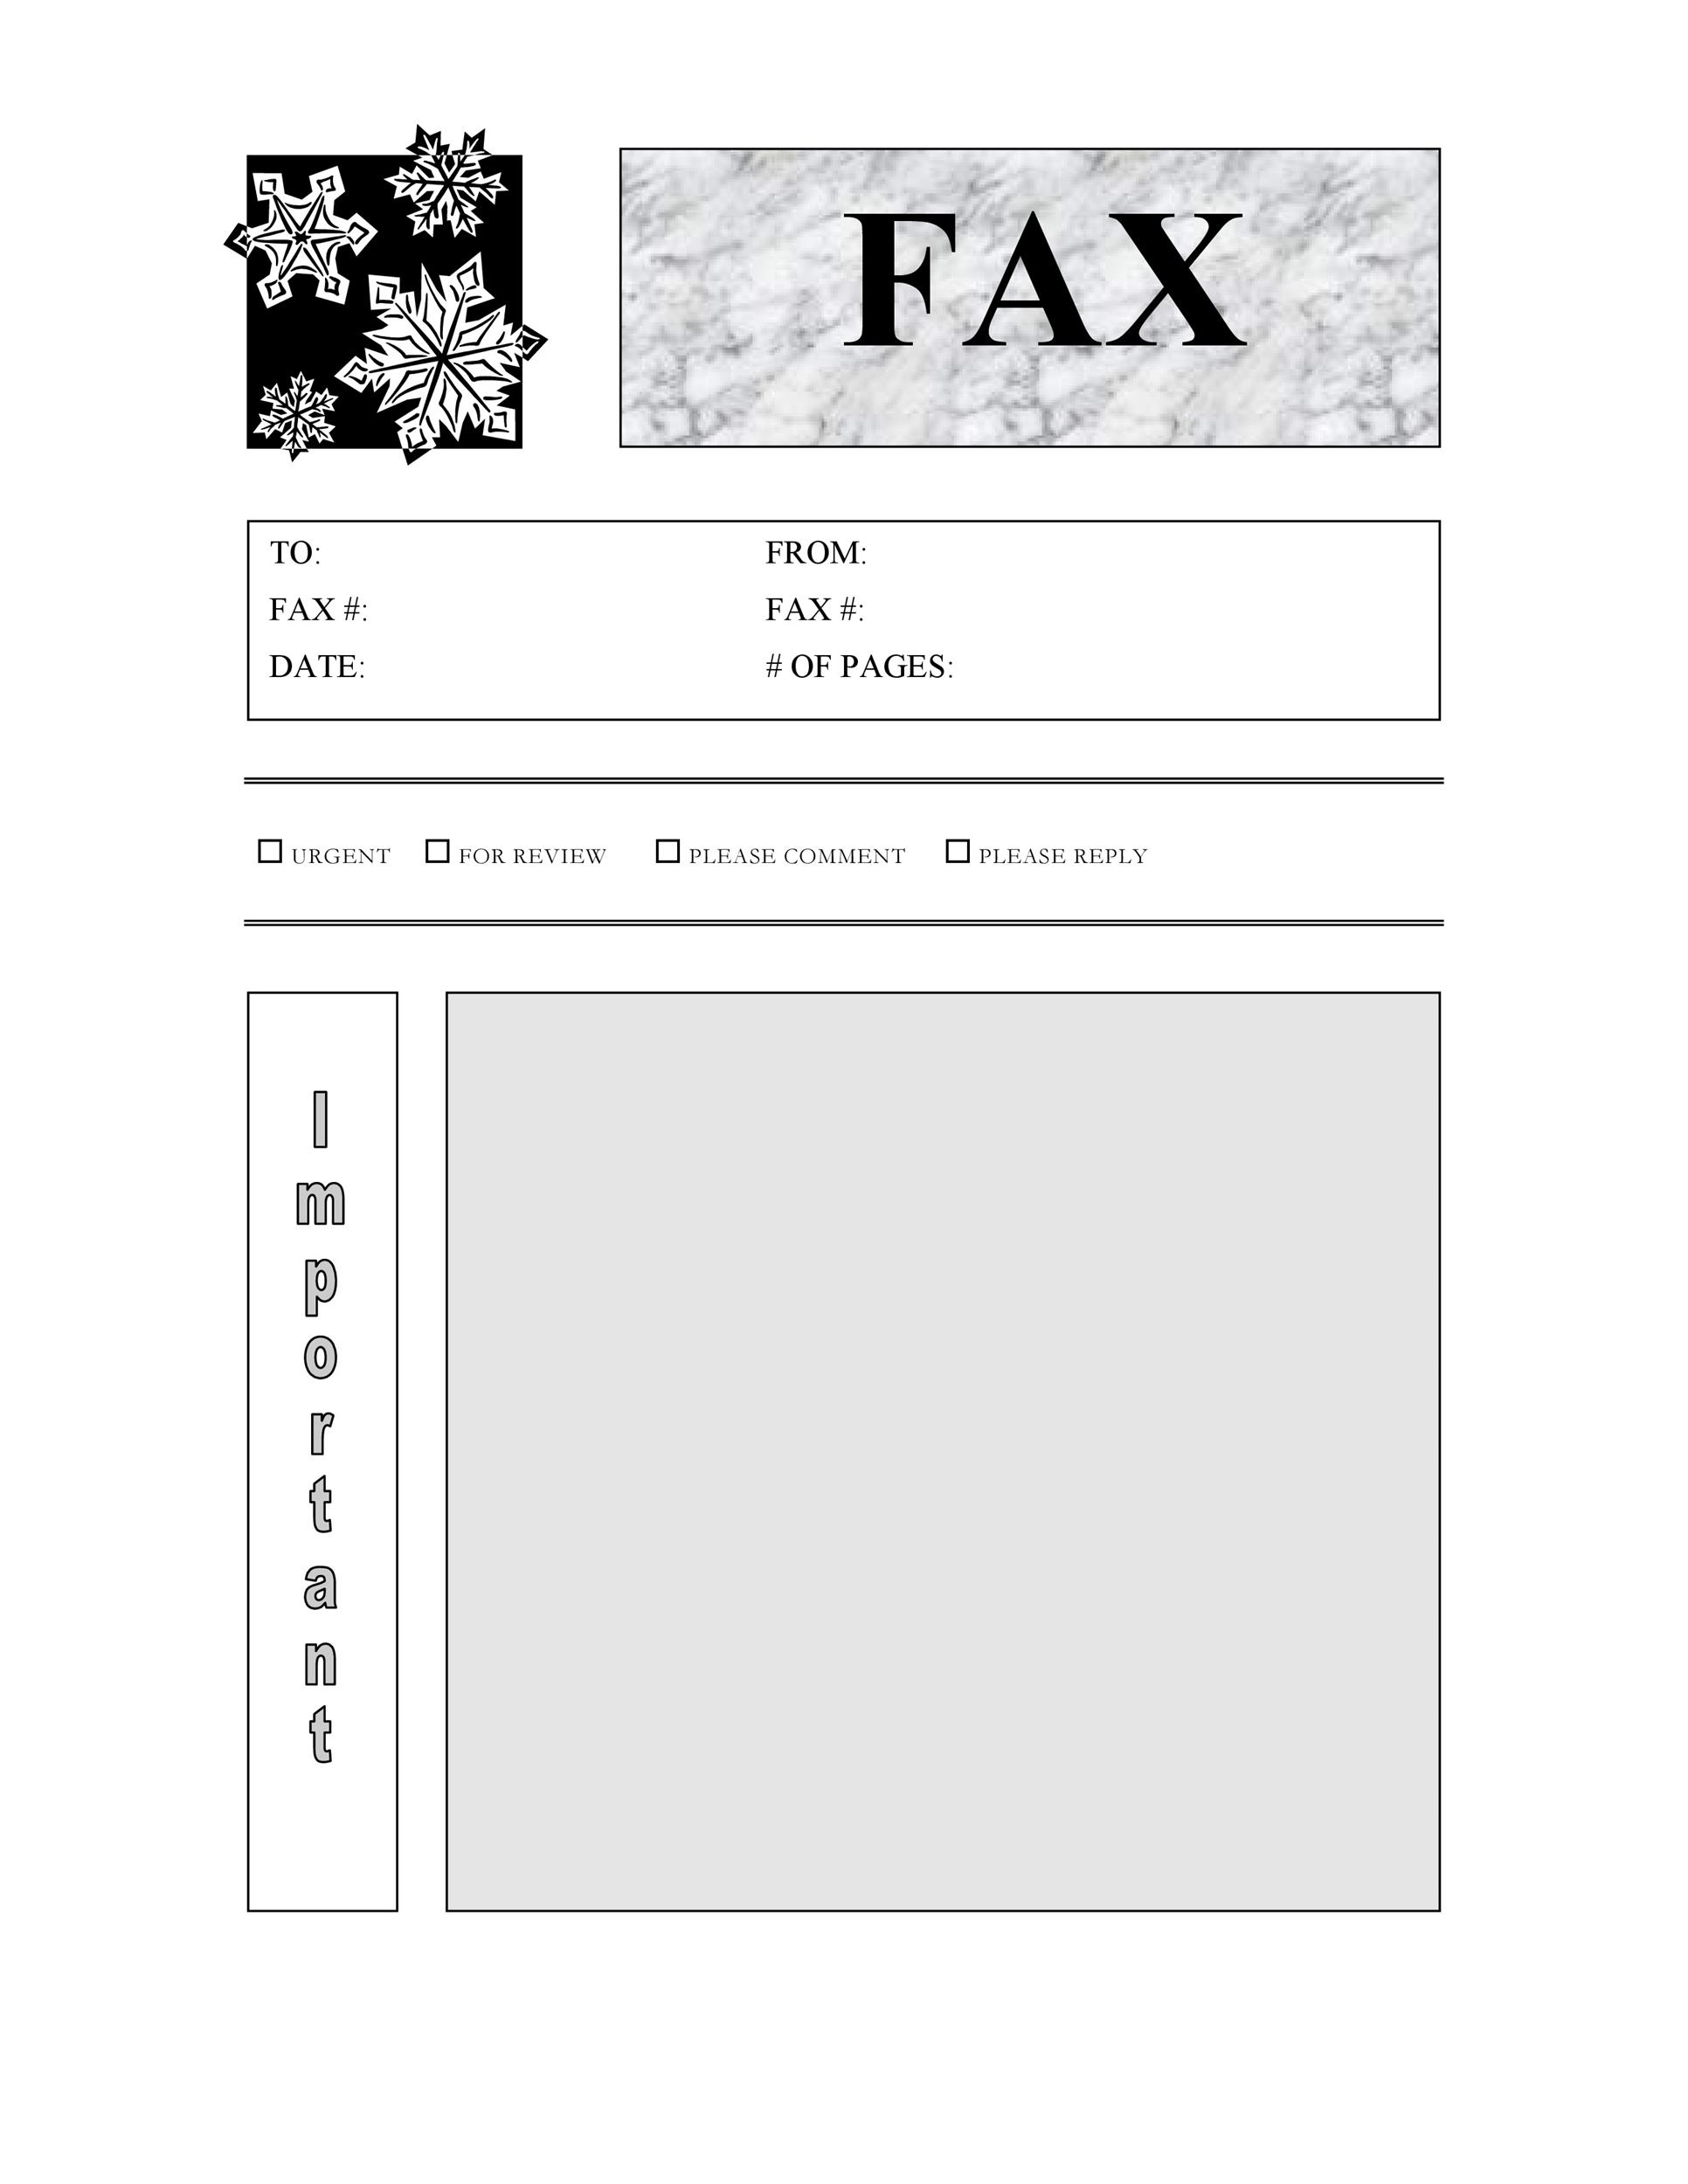 Printable Fax Cover Sheet Templates Template Lab - Fax cover letter template microsoft word